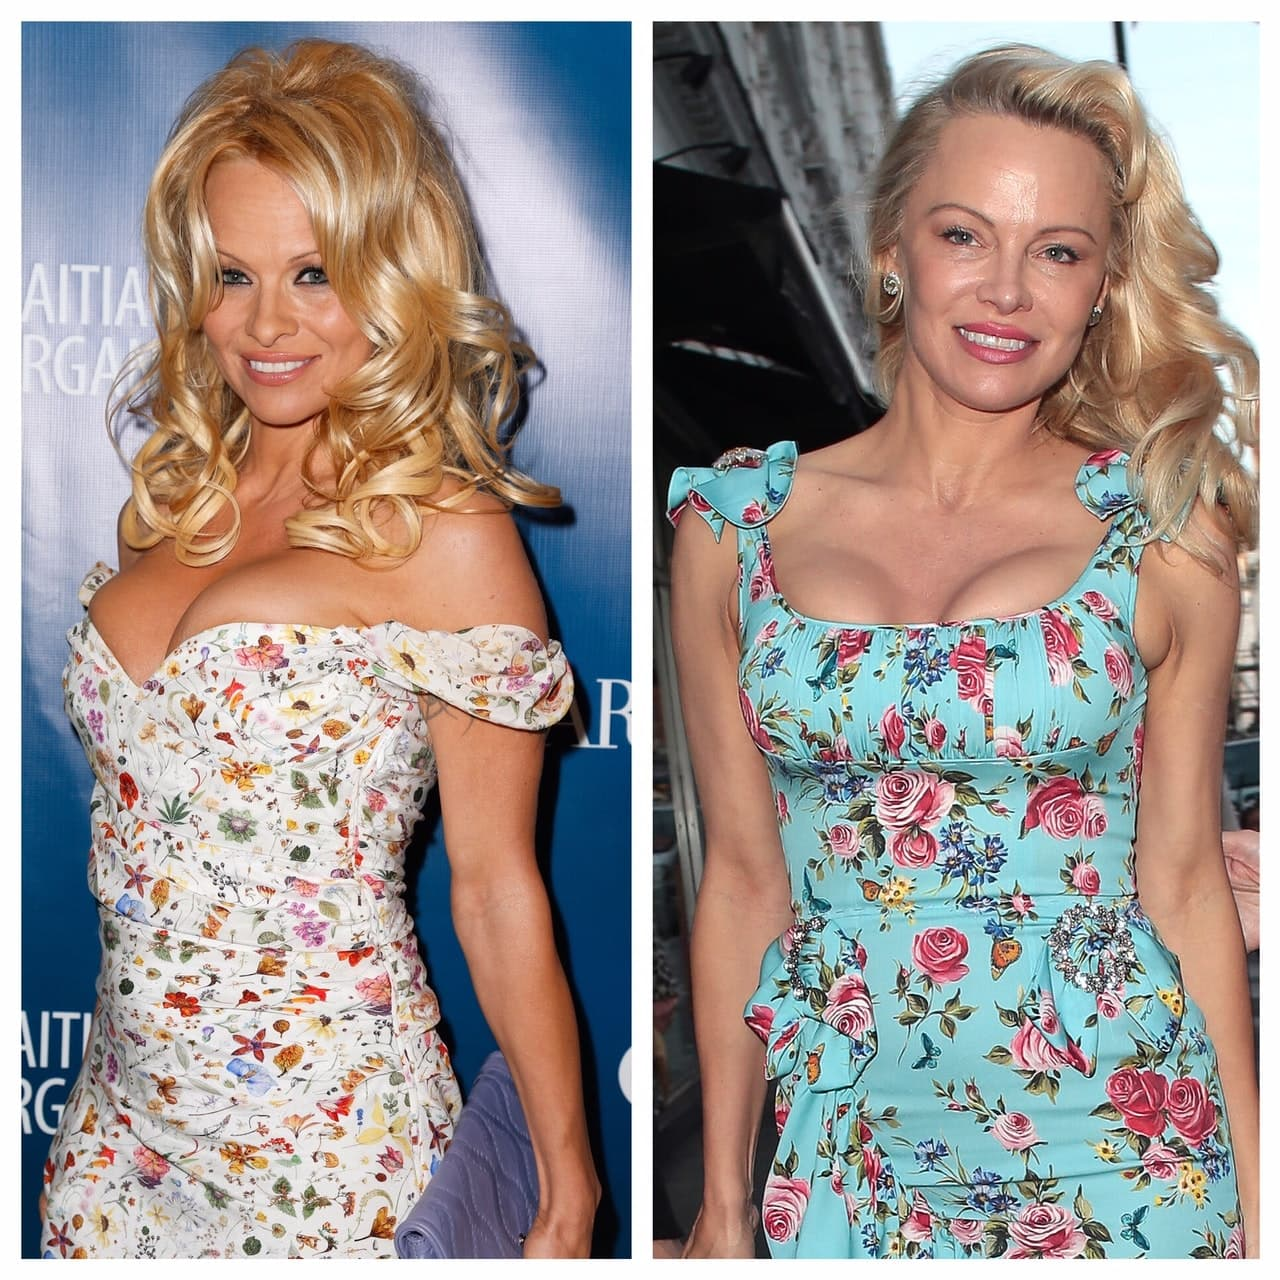 Pam Anderson Before And After Plastic Surgery photo - 1